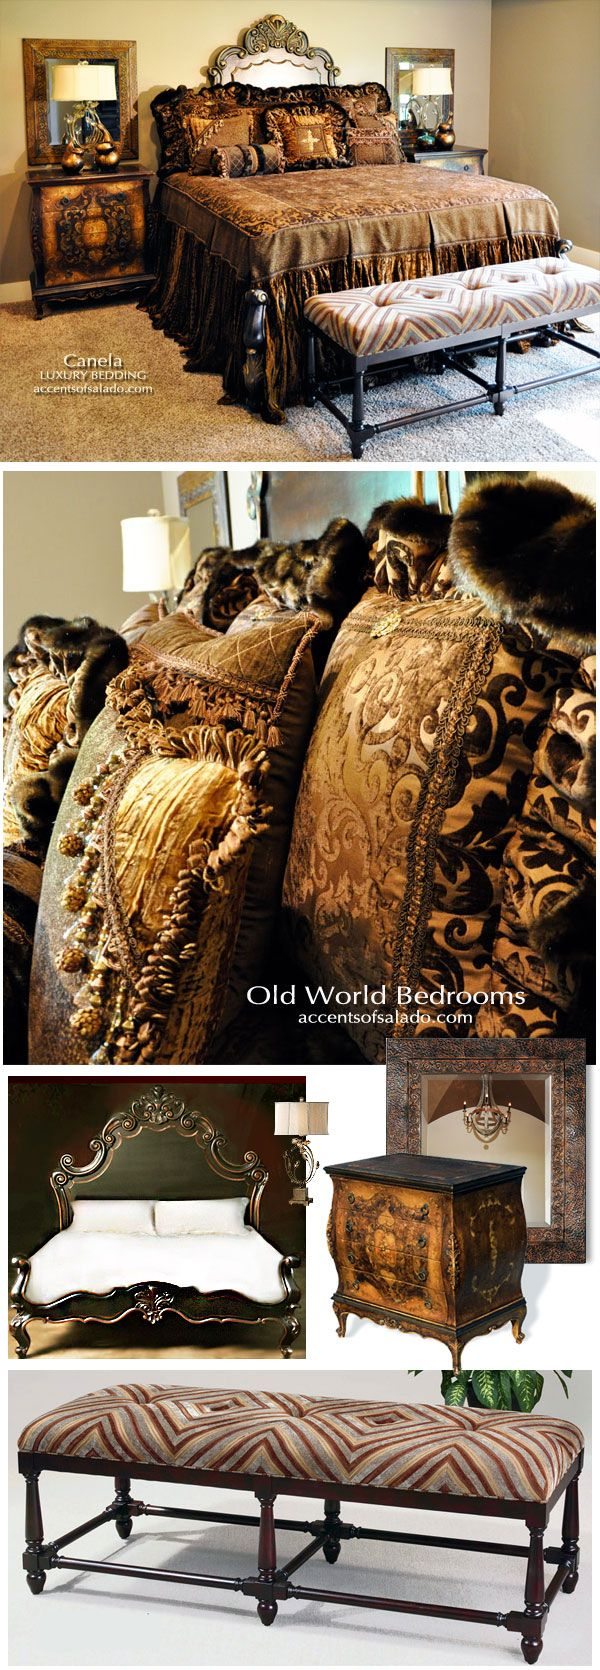 How To Furnish House With Modern Furniture: How To Furnish An Old World Bedroom: Hand Carved Bed With